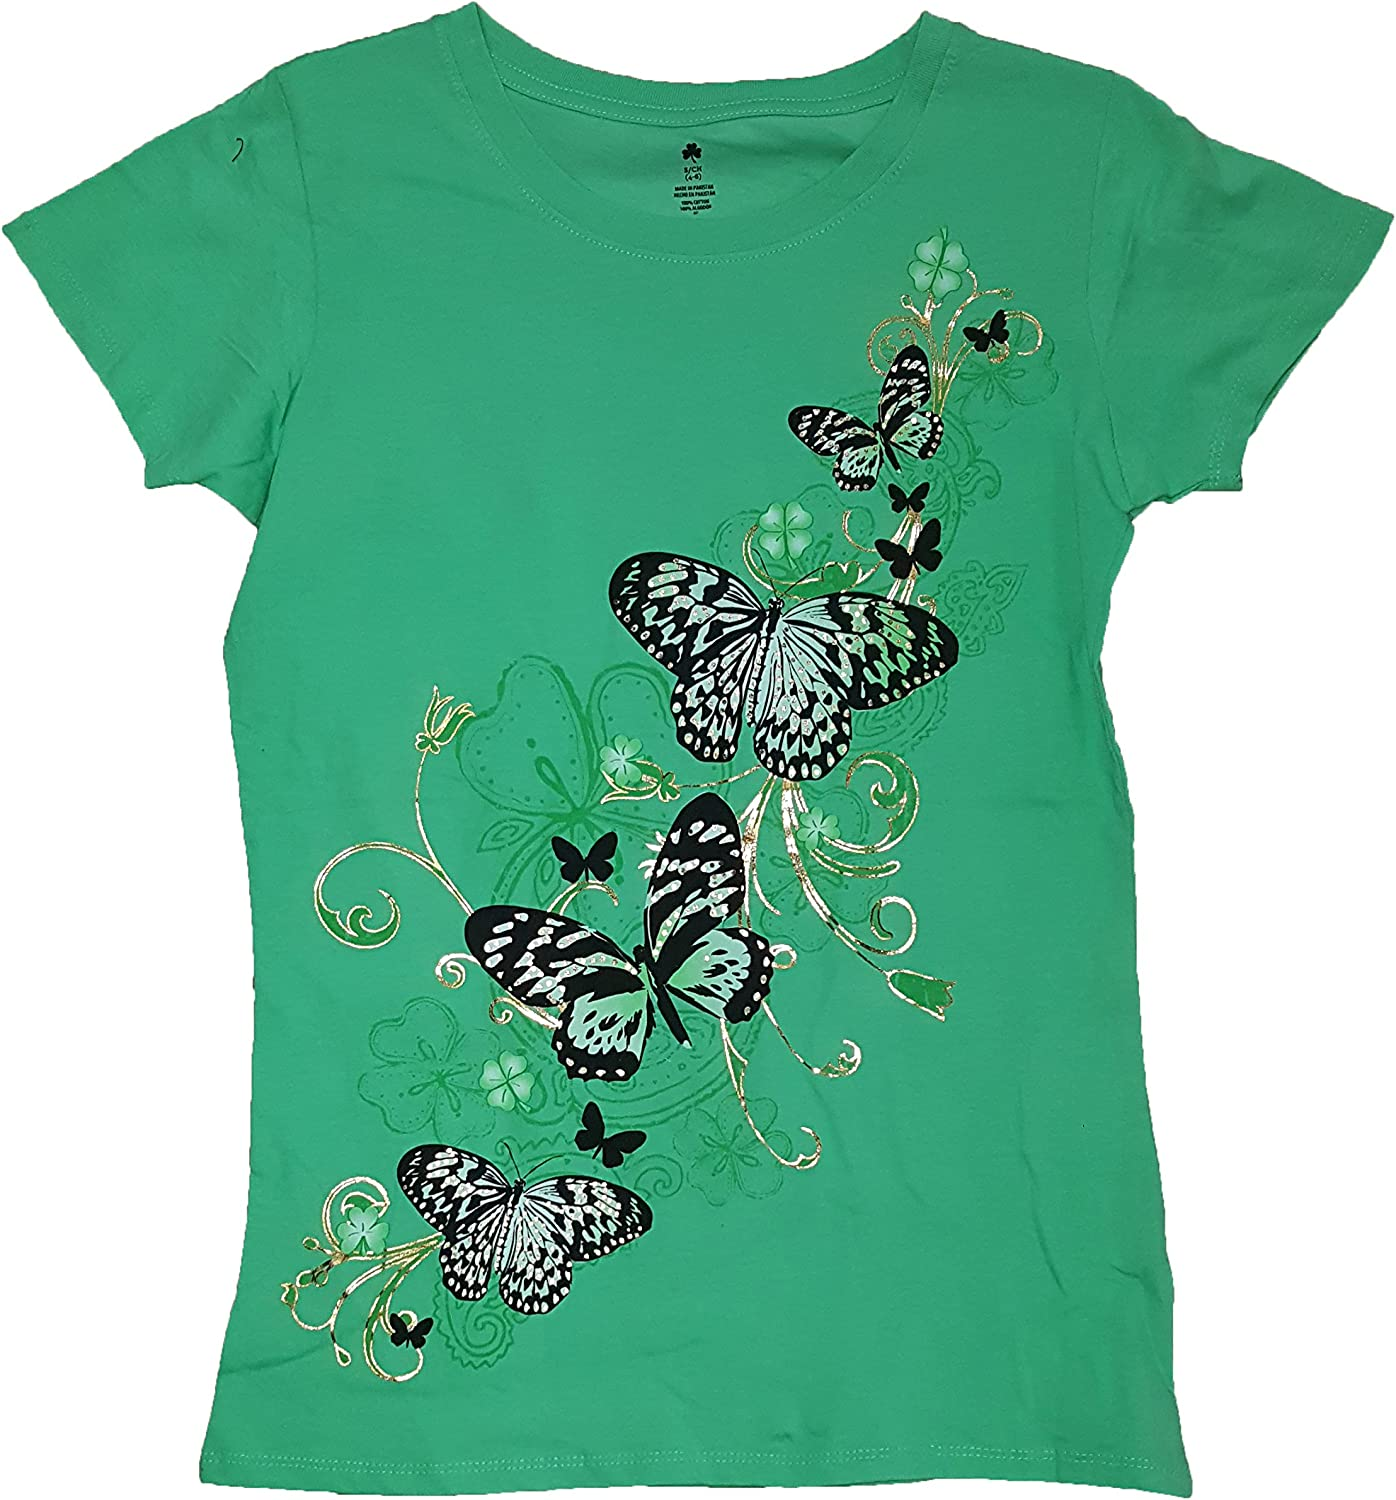 St. patrick's day Lucky Flutter Butterflies Green Graphic TShirt